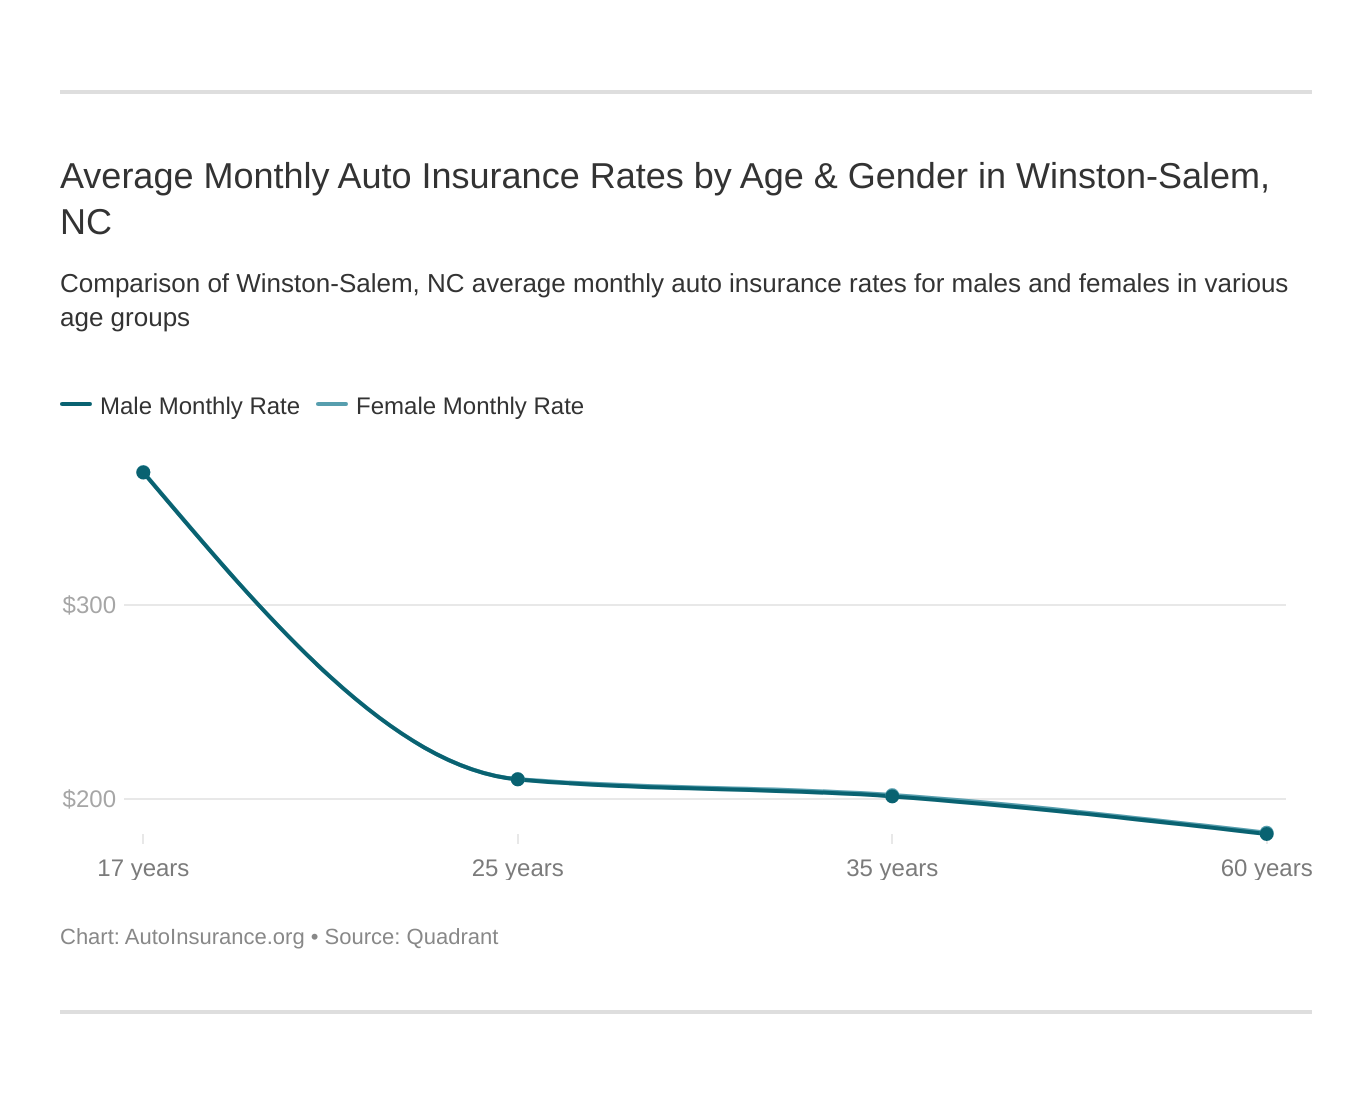 Average Monthly Auto Insurance Rates by Age & Gender in Winston-Salem, NC